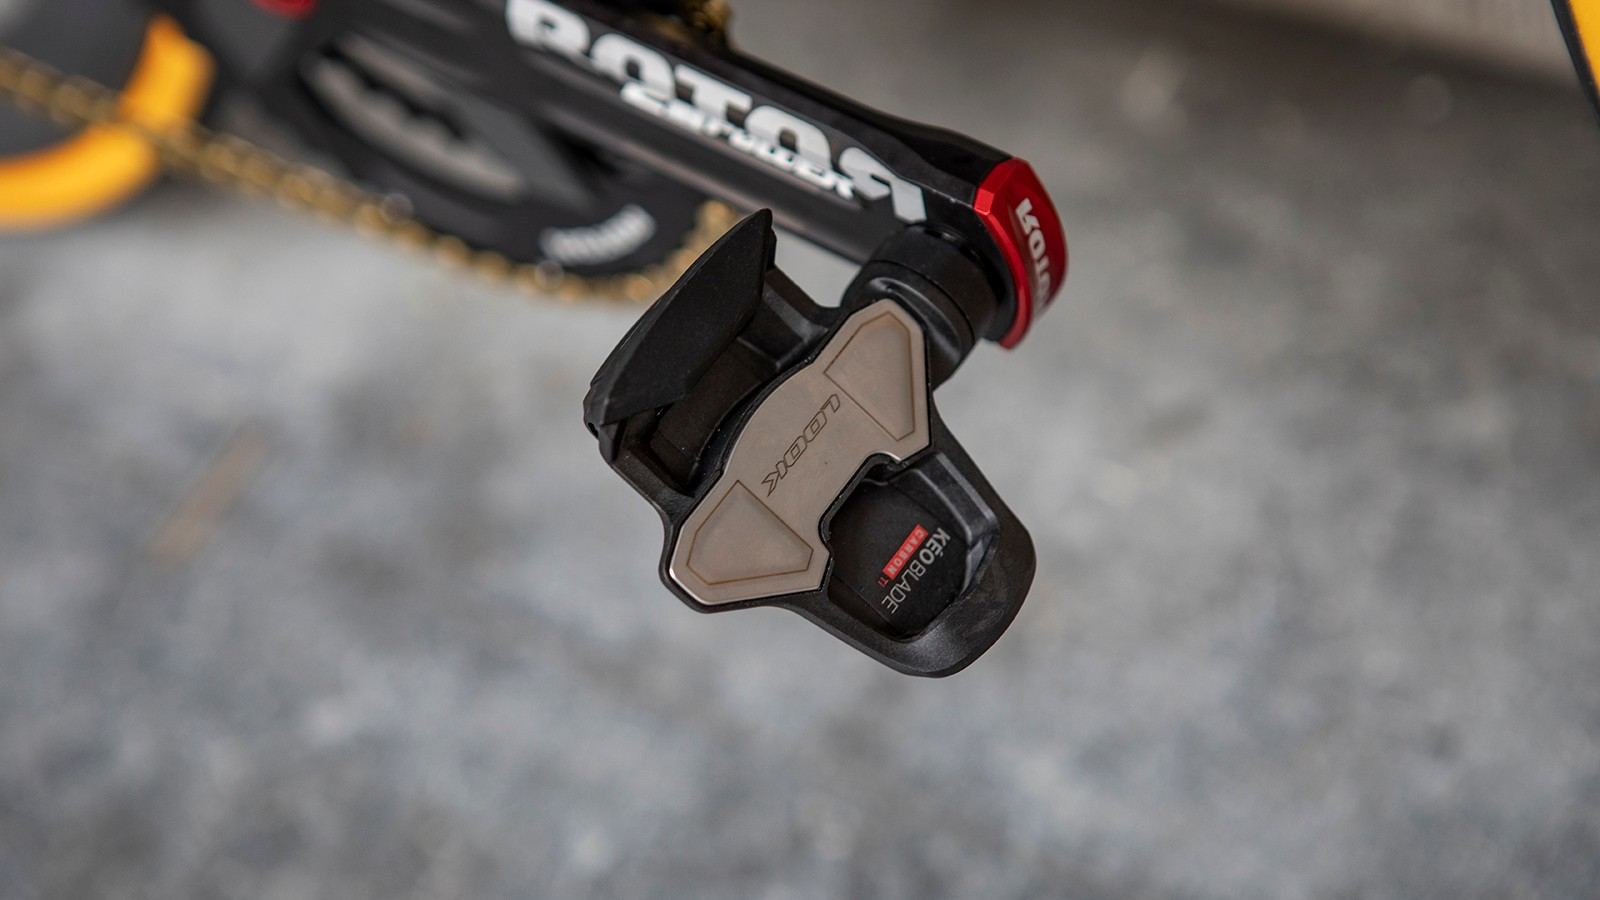 The French team opts for Look Keo Blade Carbon pedals